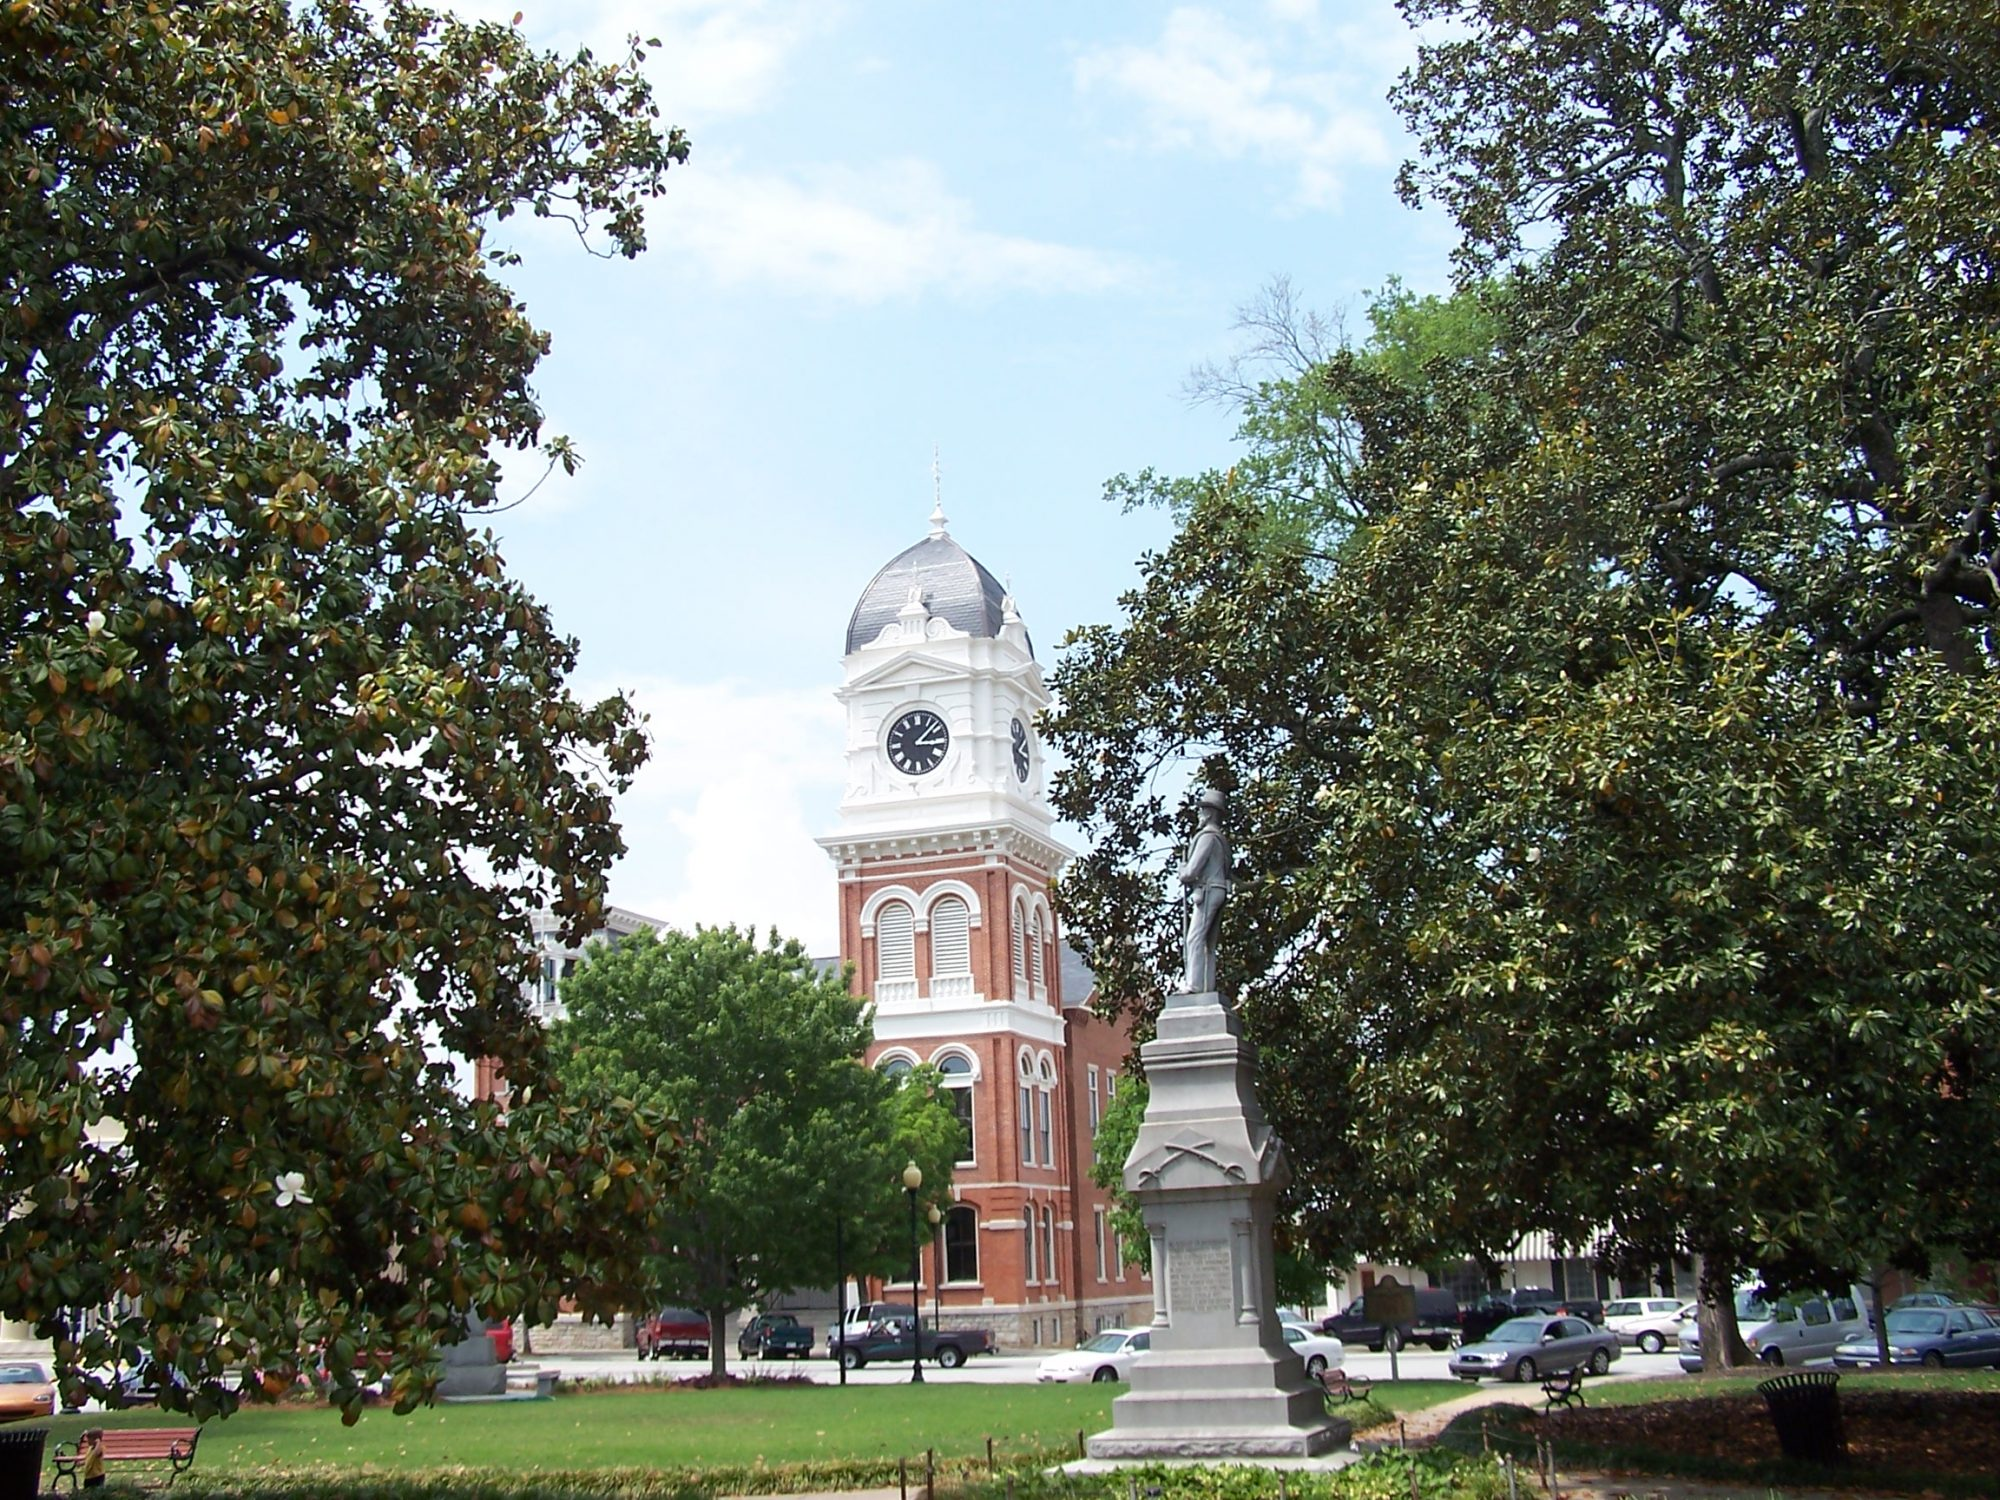 Does This Southern Town Look Familiar? - Southern Living